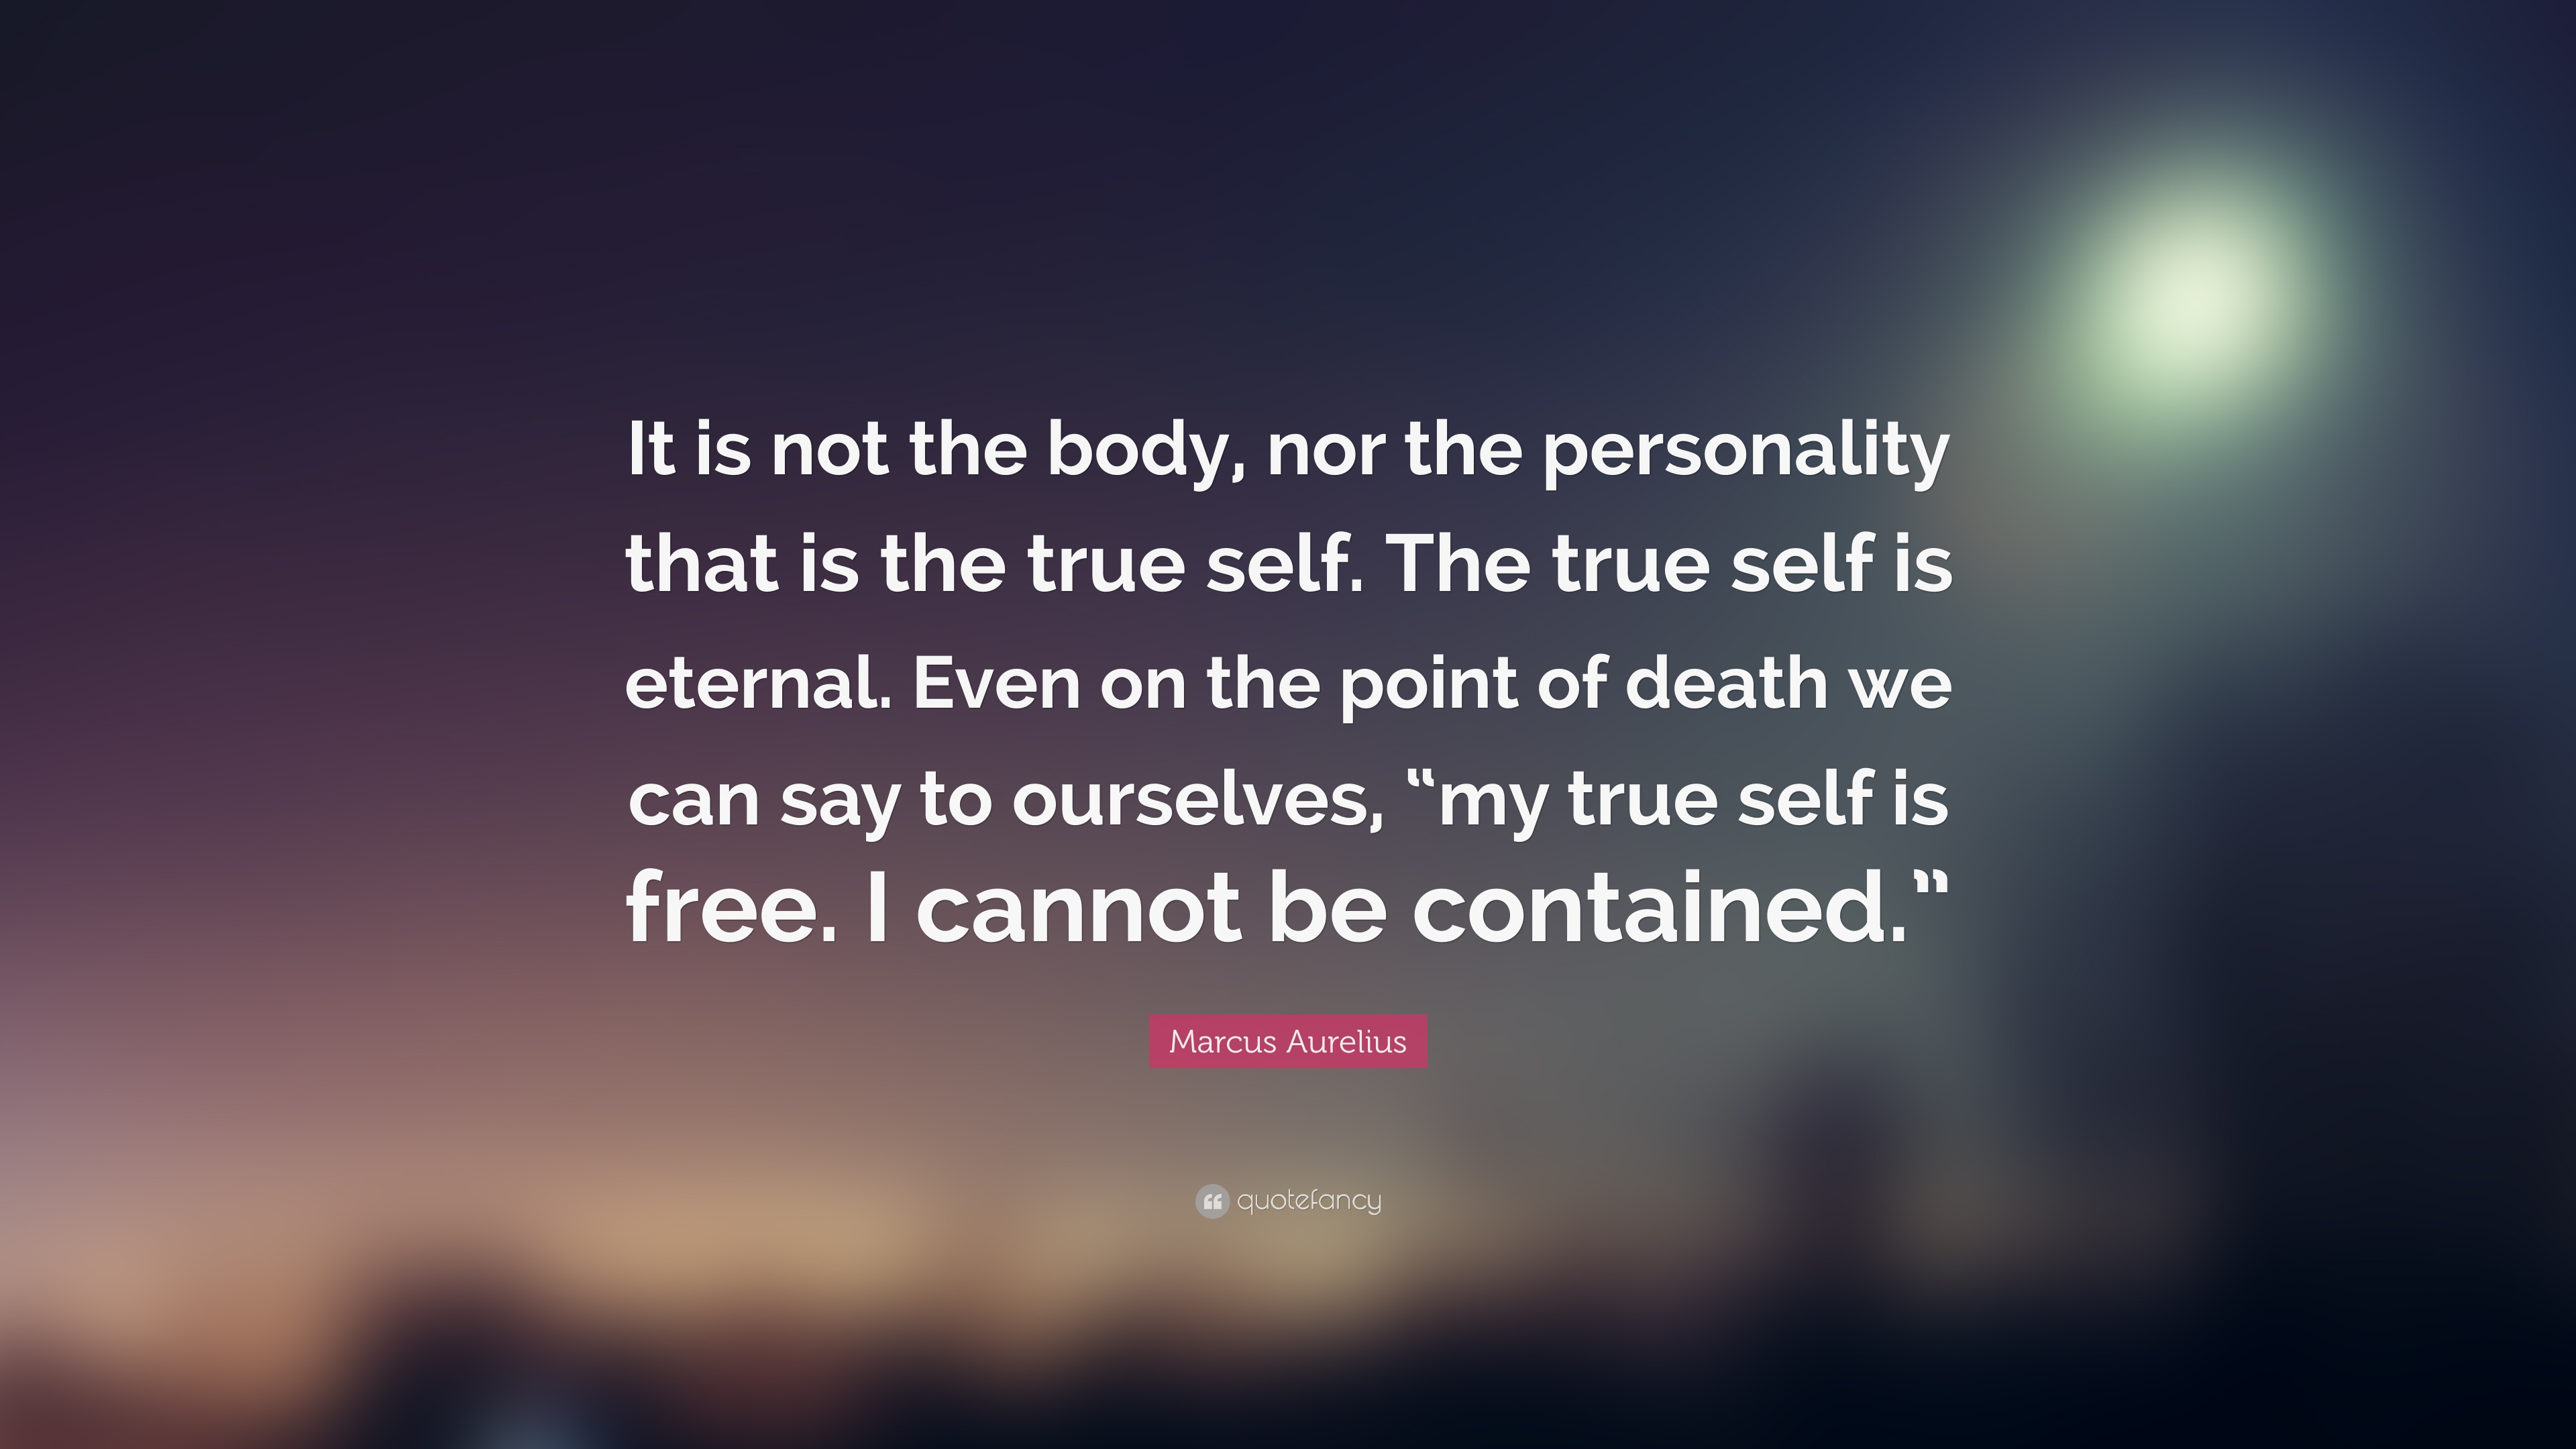 103851-Marcus-Aurelius-Quote-It-is-not-the-body-nor-the-personality-that.jpg